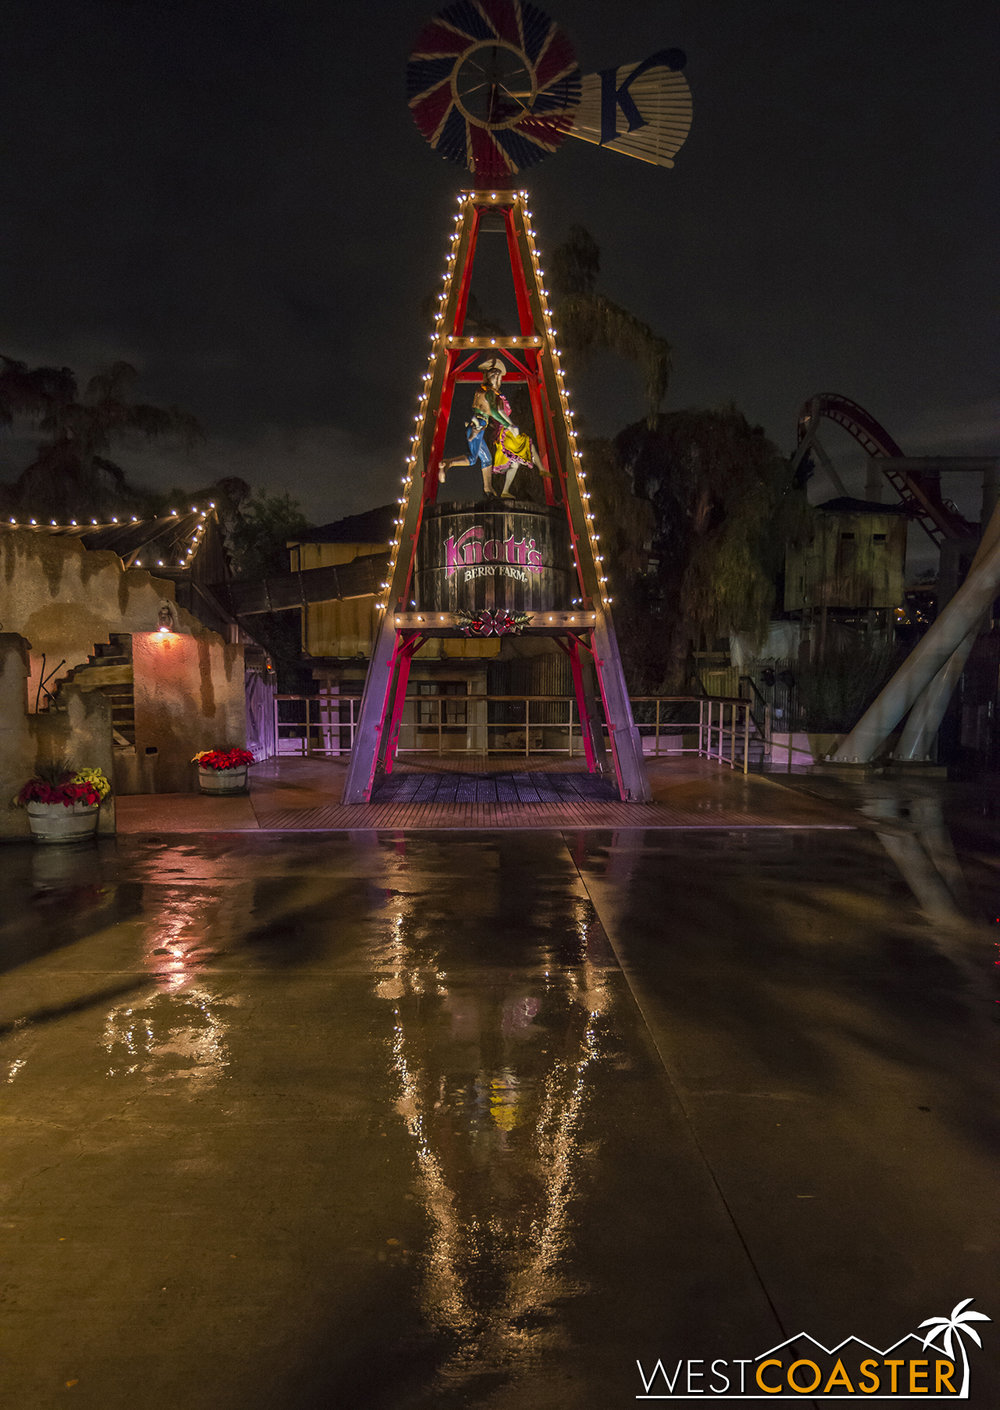 A parting shot... the windmill casts a nice reflection on the wet pavement on this rainy evening.